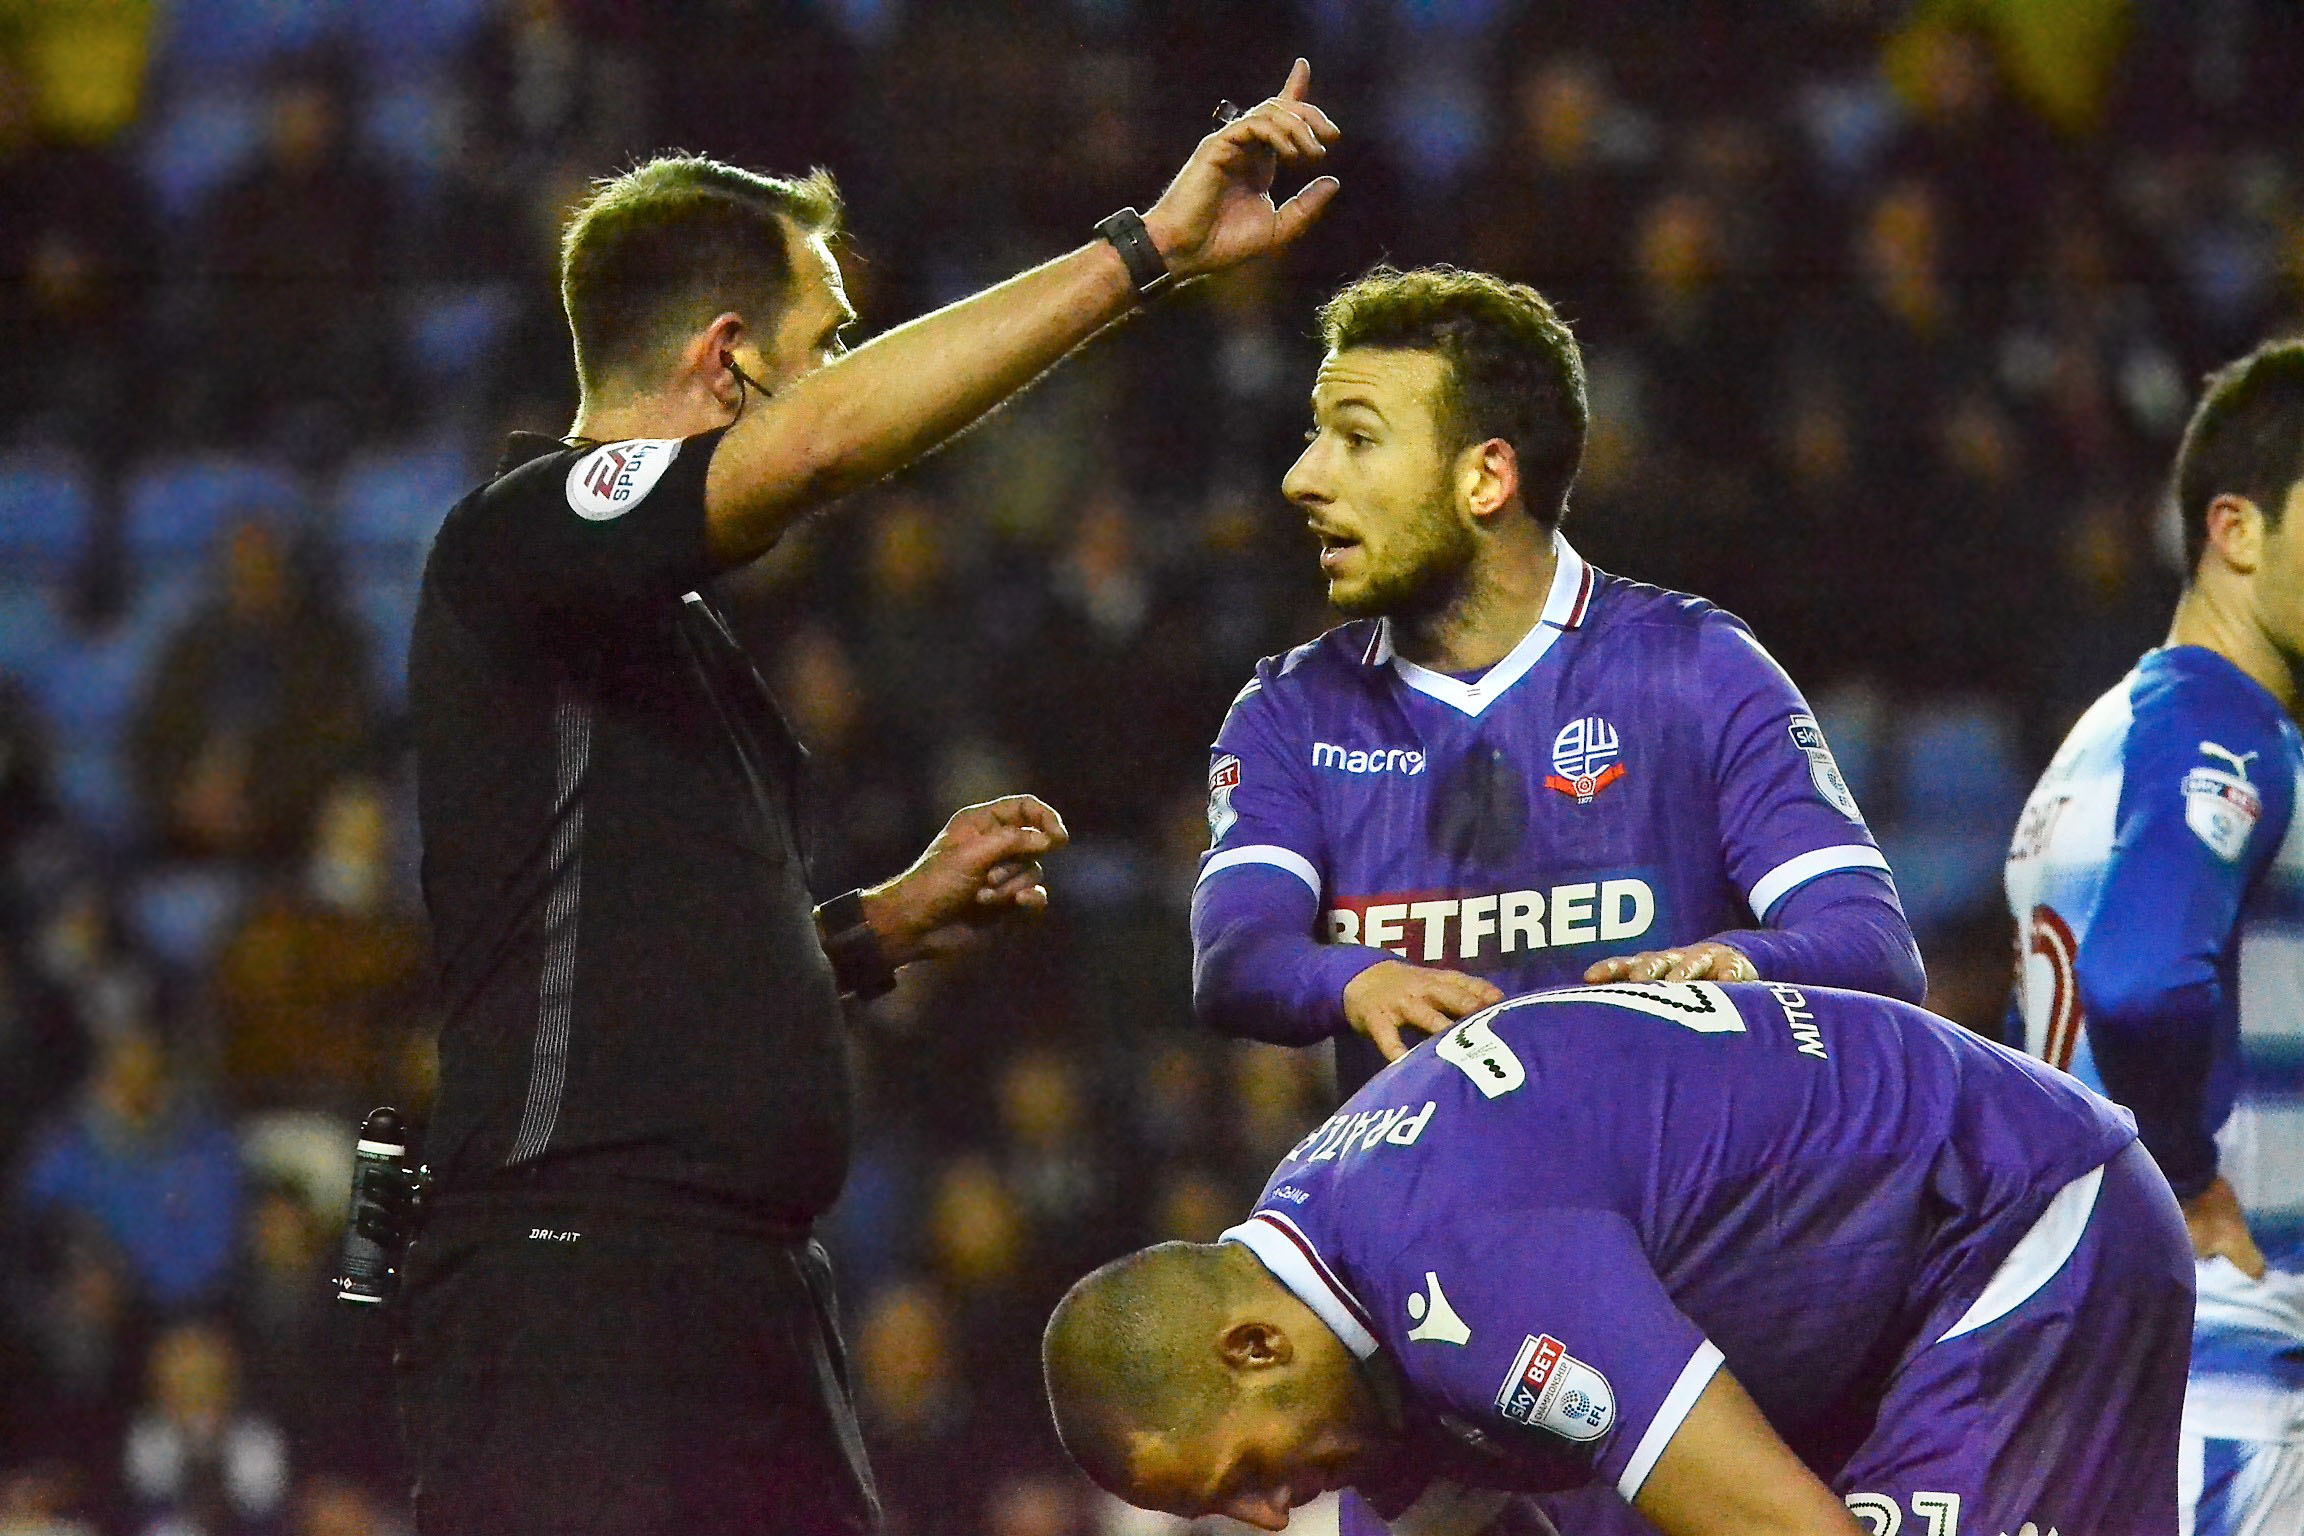 Bolton striker Adam Le Fondre gets a talking to from referee James Linington. Pictures: Chris Forsey. Code 180329.